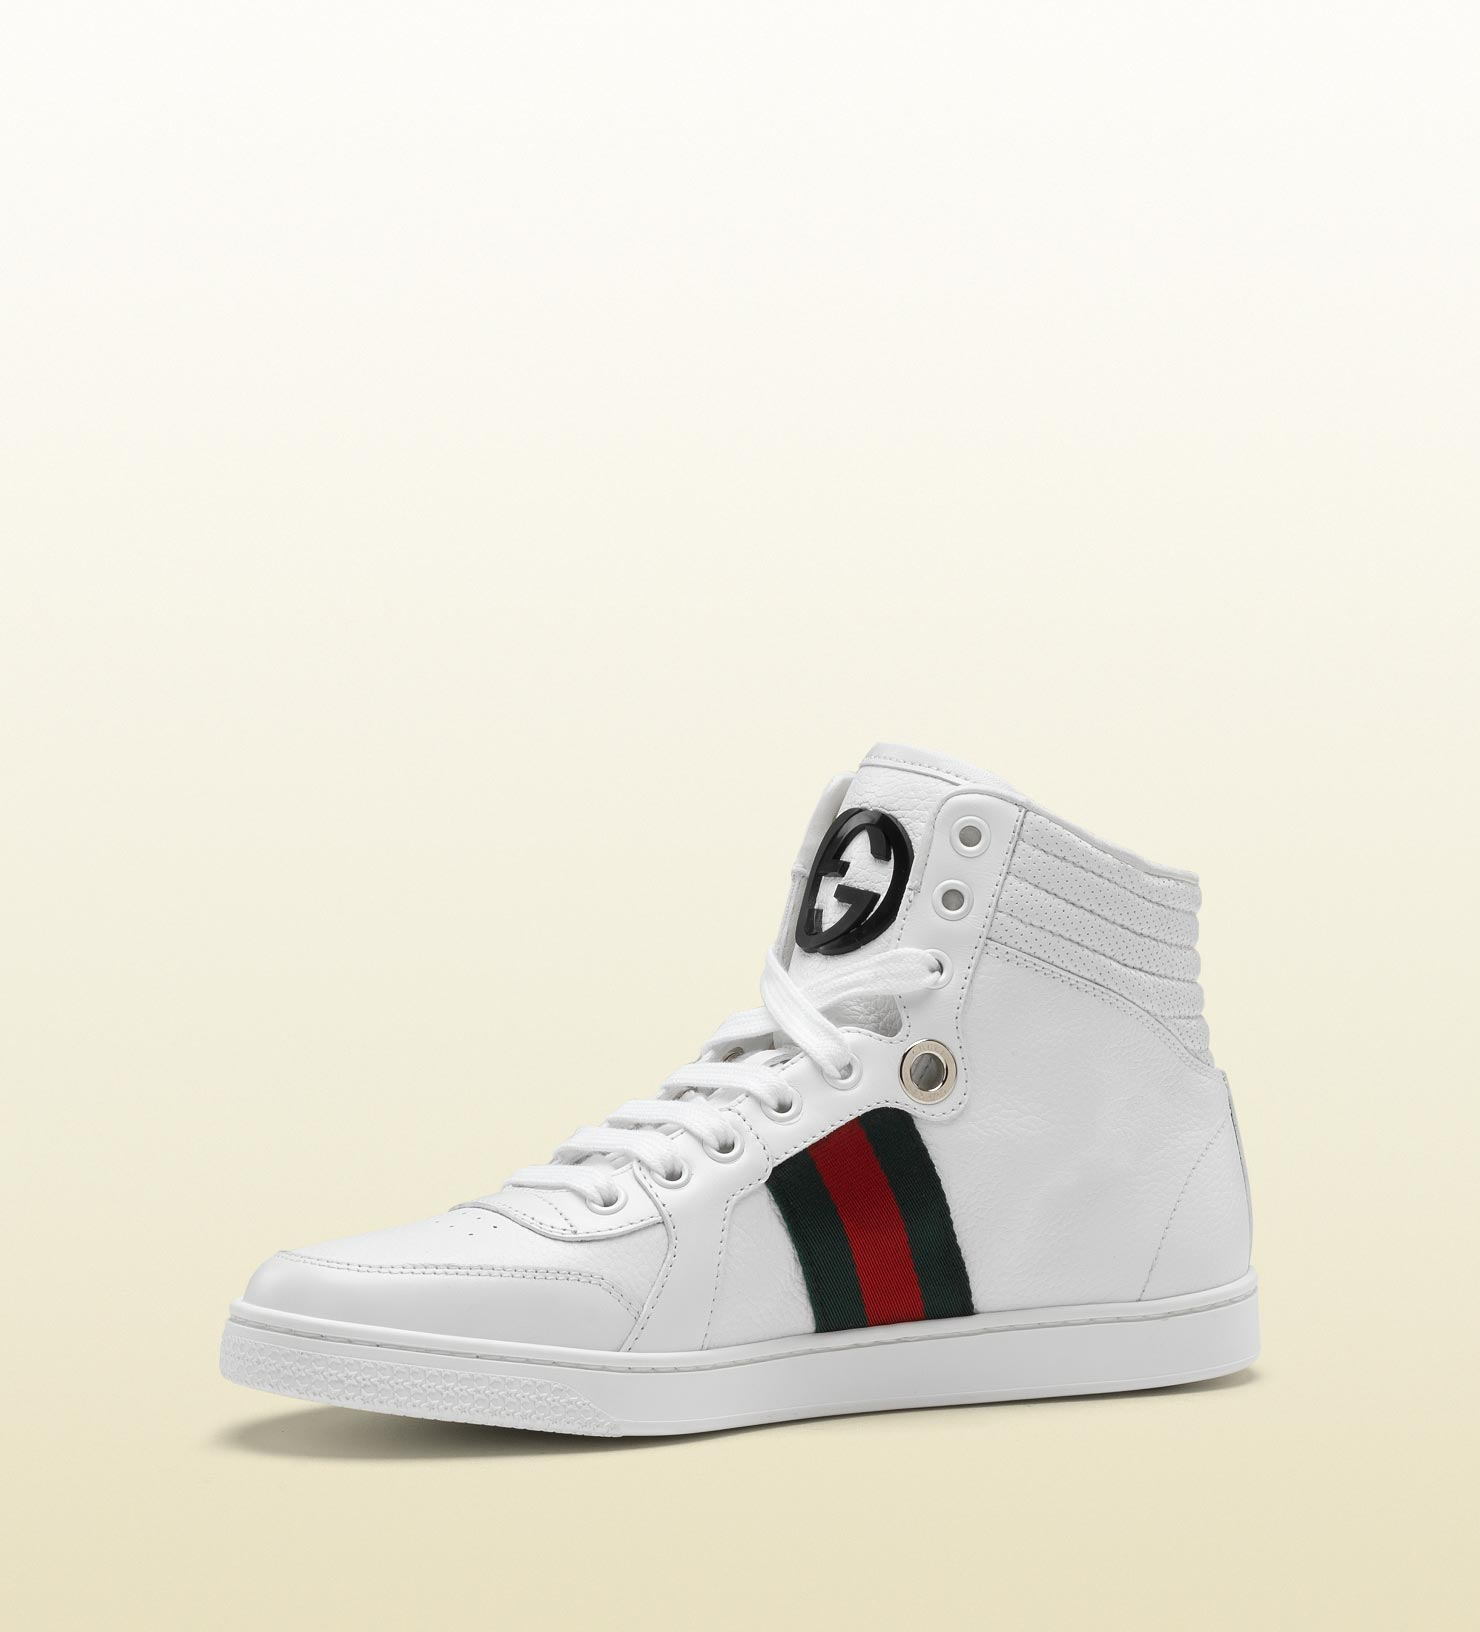 Red And Green Gucci Shoes